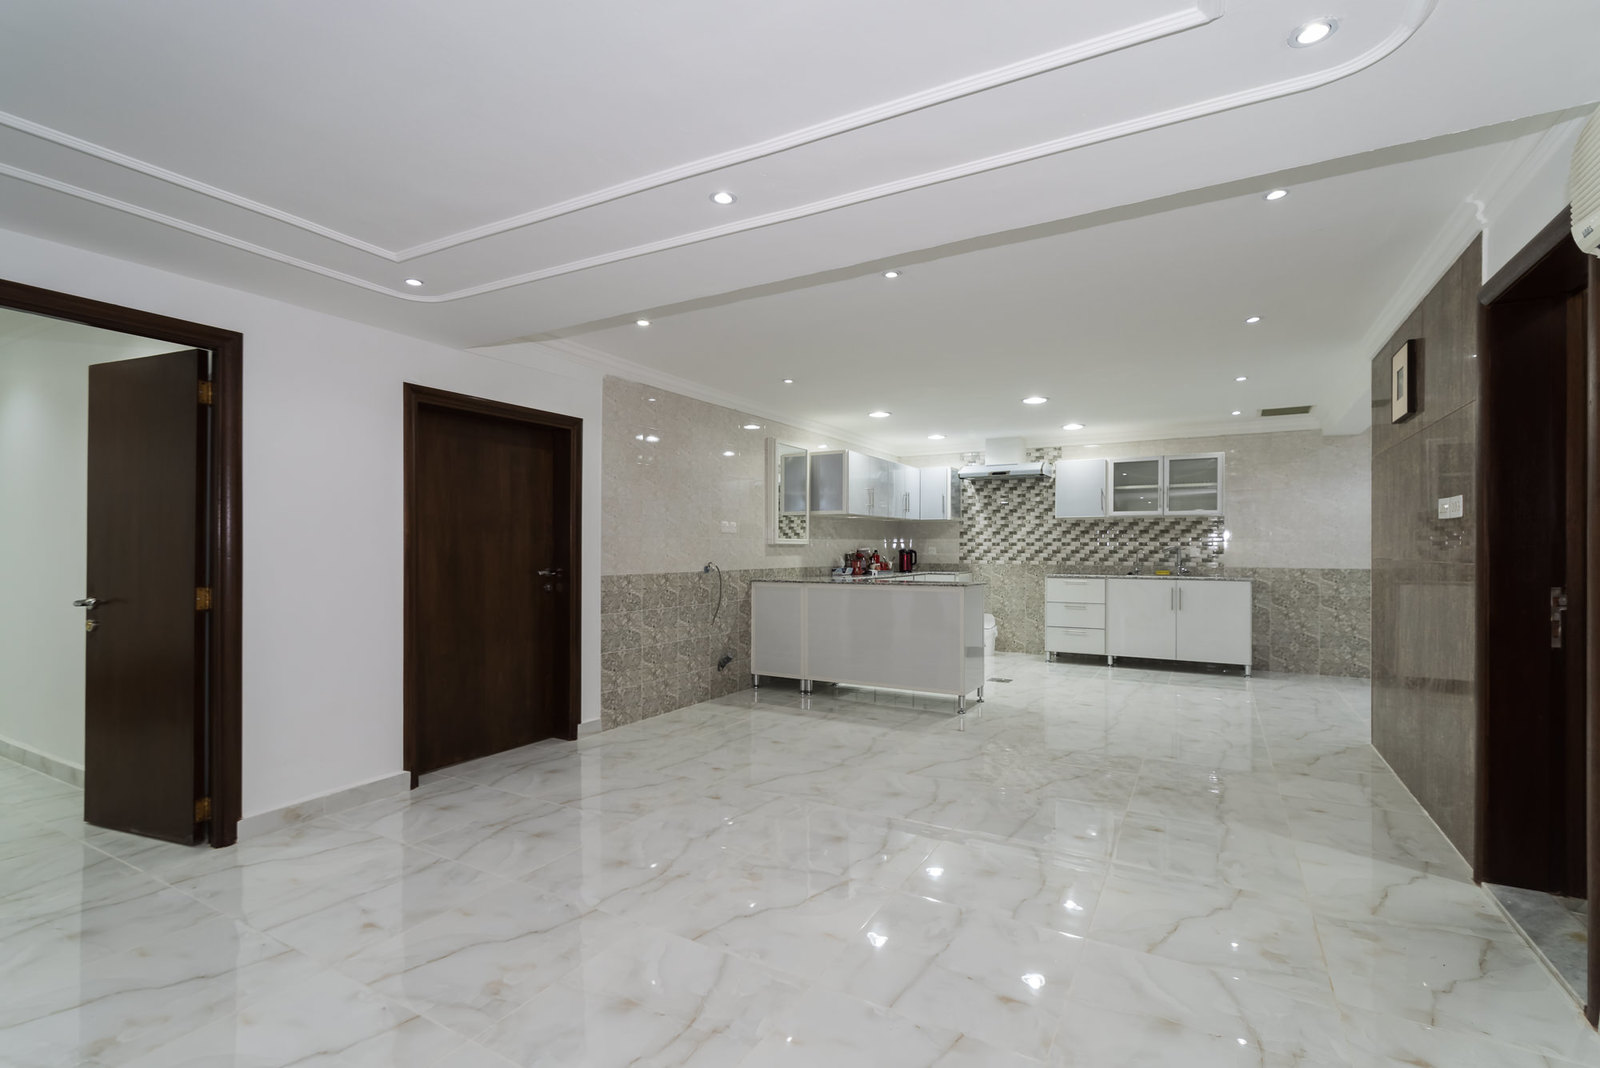 Mangaf – new, unfurnished, two bedroom basement apartment